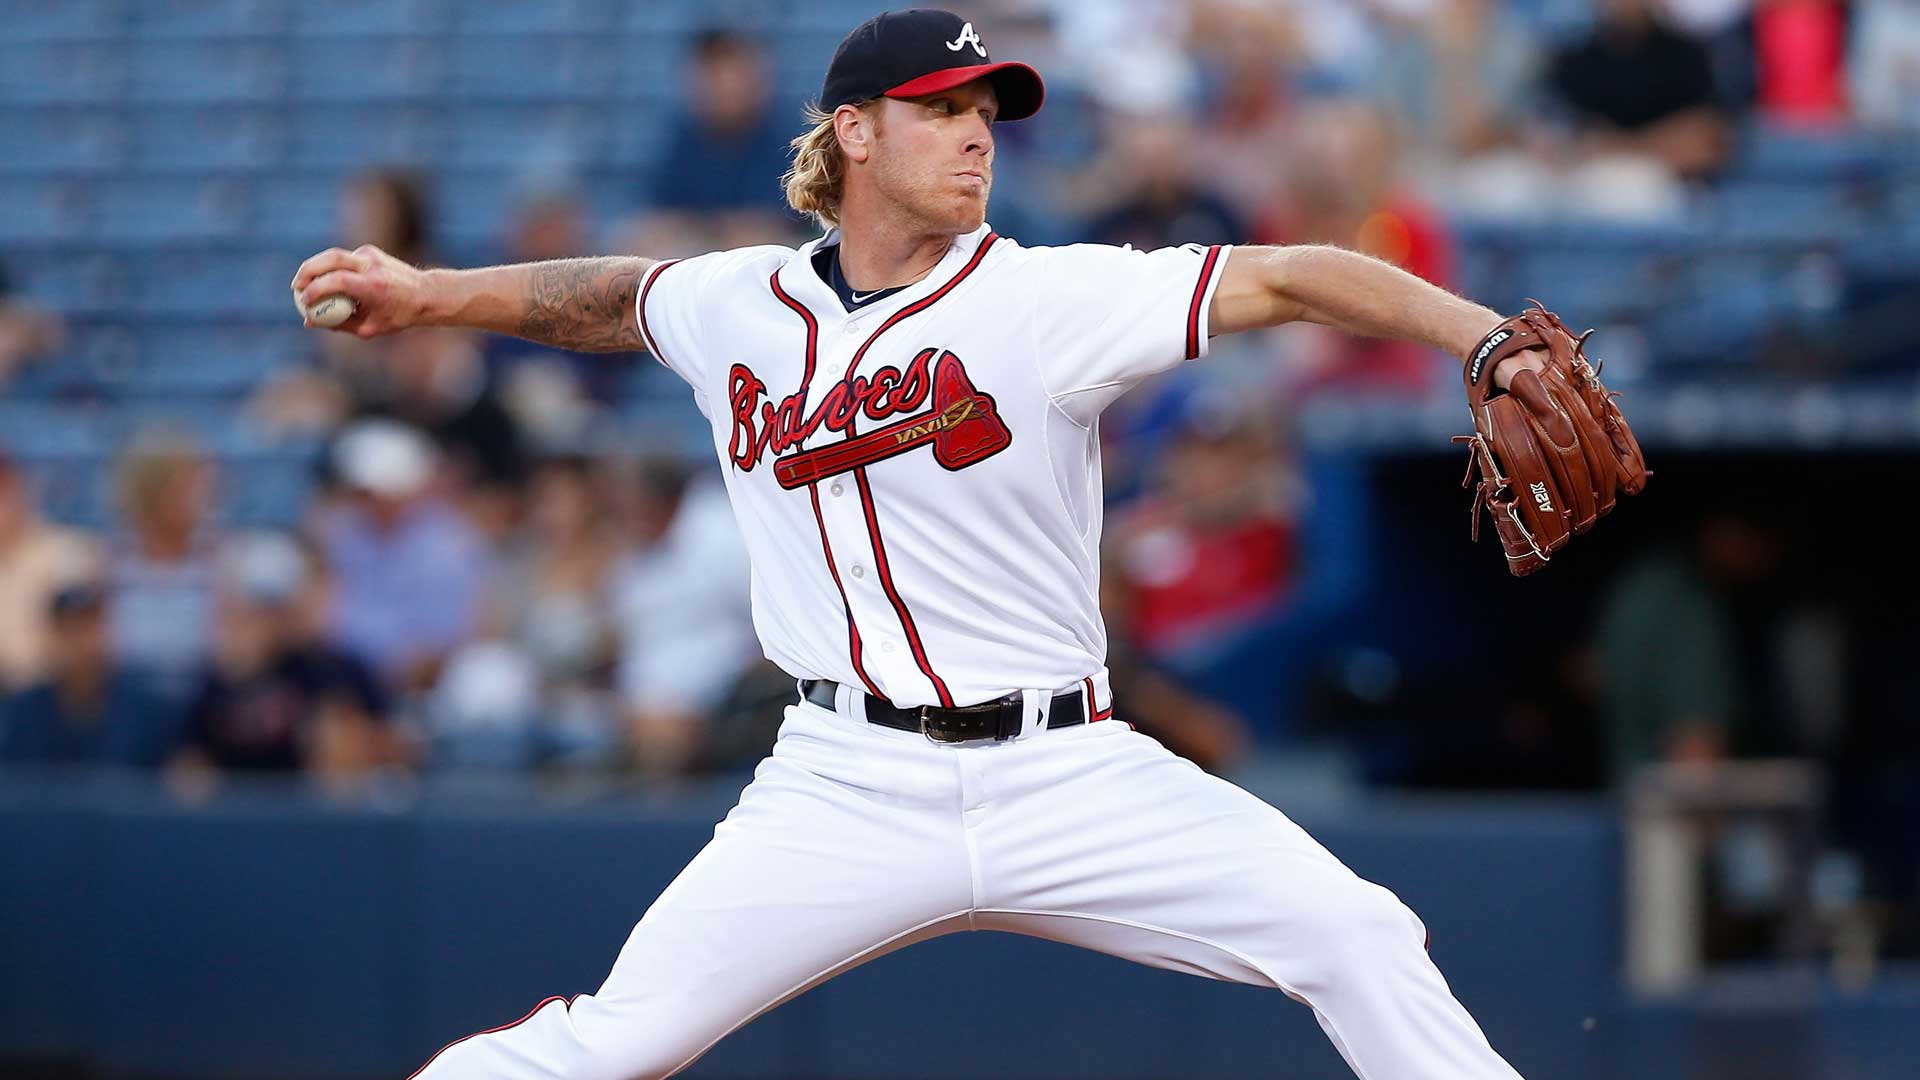 Foltynewicz, Graveman lose in arbitration; players lead 7